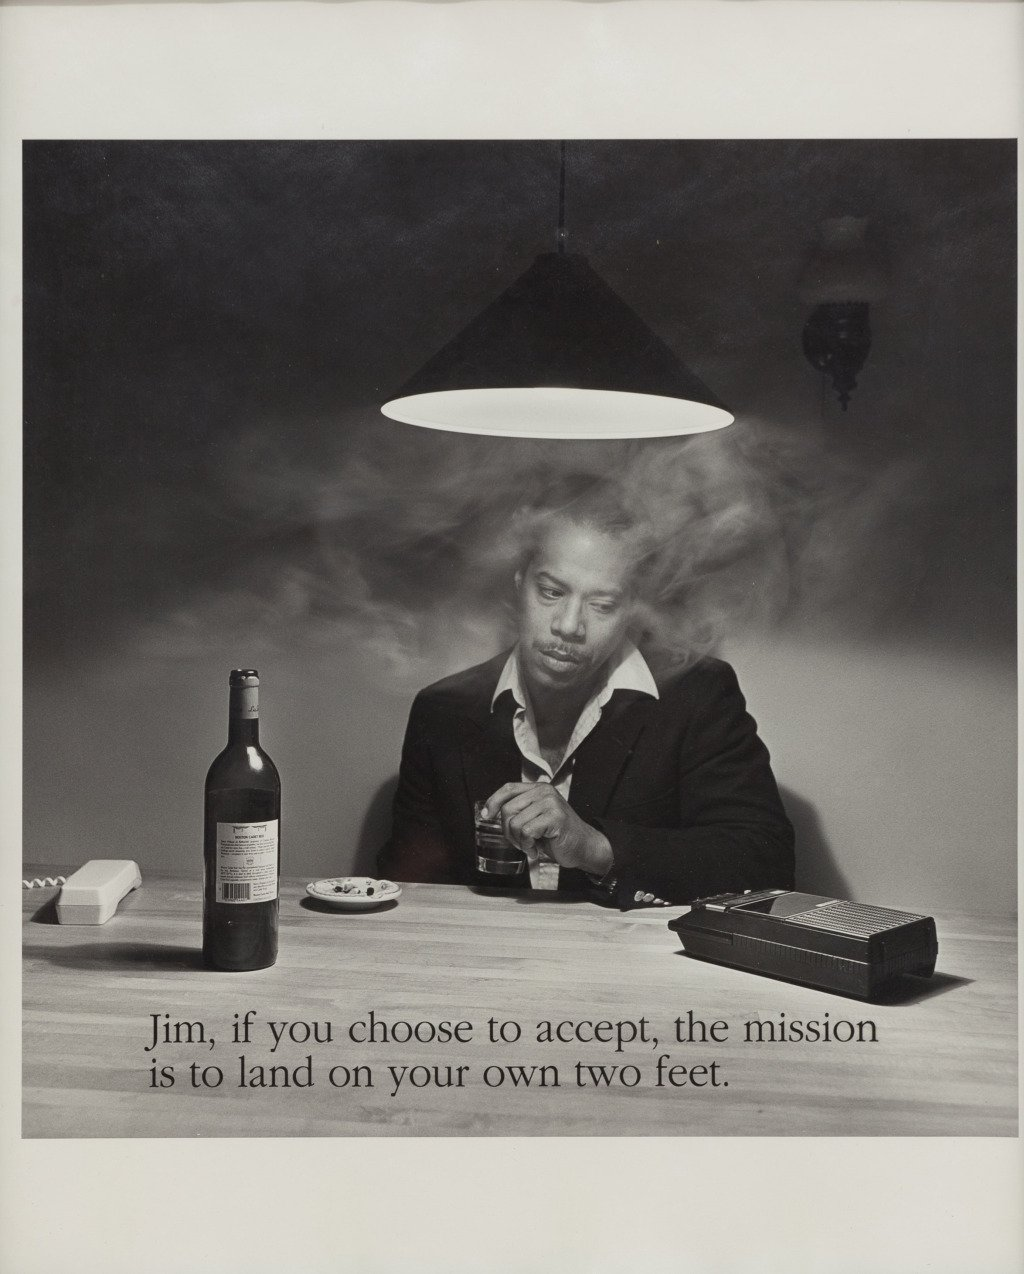 main work - Carrie Mae Weems, Jim, if you choose to accept...